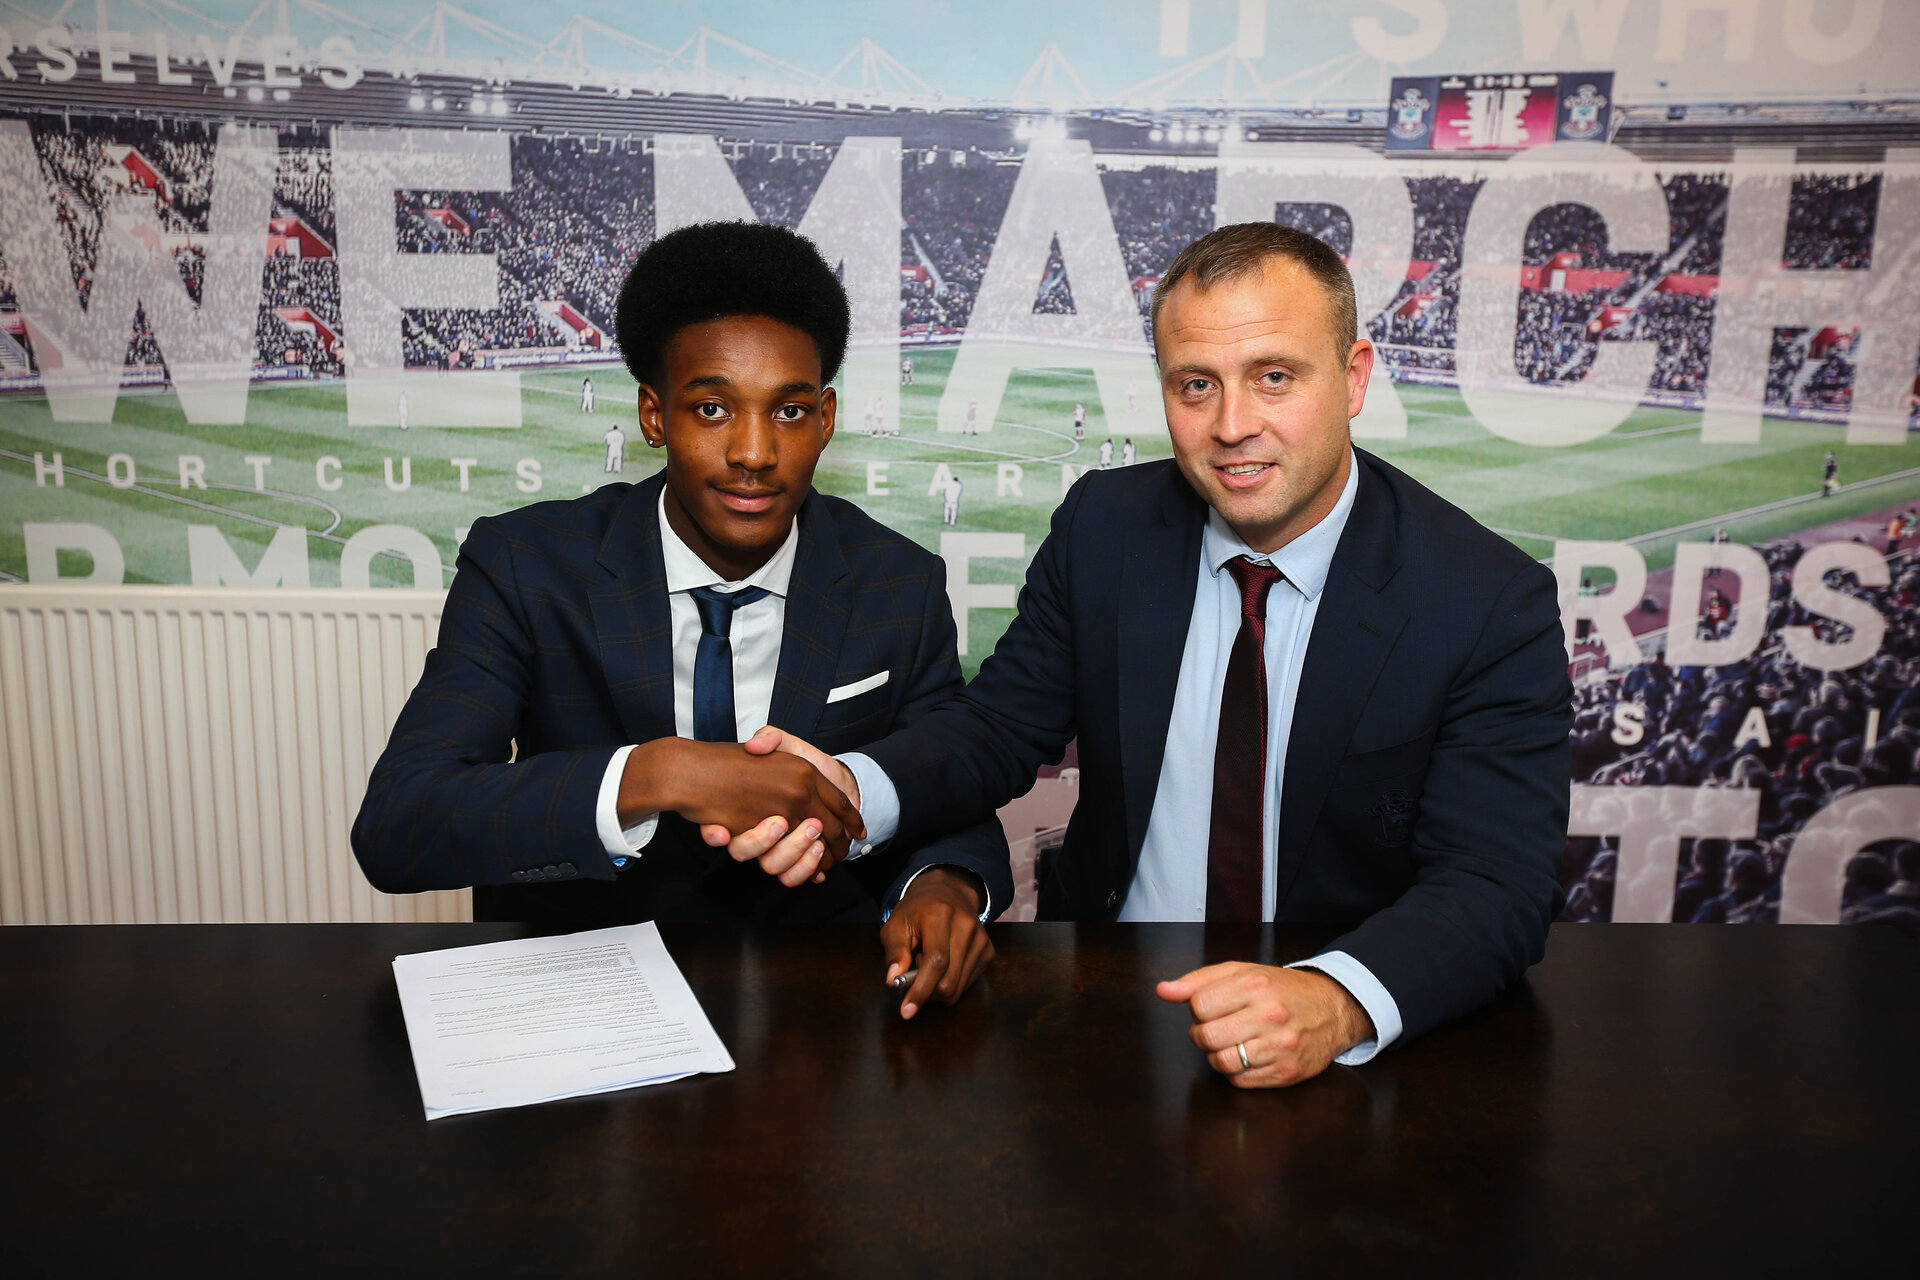 SOUTHAMPTON, ENGLAND - 28 JUNE: Ramello Mitchell (left) signs as a first year scholar with Southampton FC on June 28, 2018 pictured at St Marys Stadium, Southampton, England. (Photo by James Bridle - Southampton FC/Southampton FC via Getty Images)